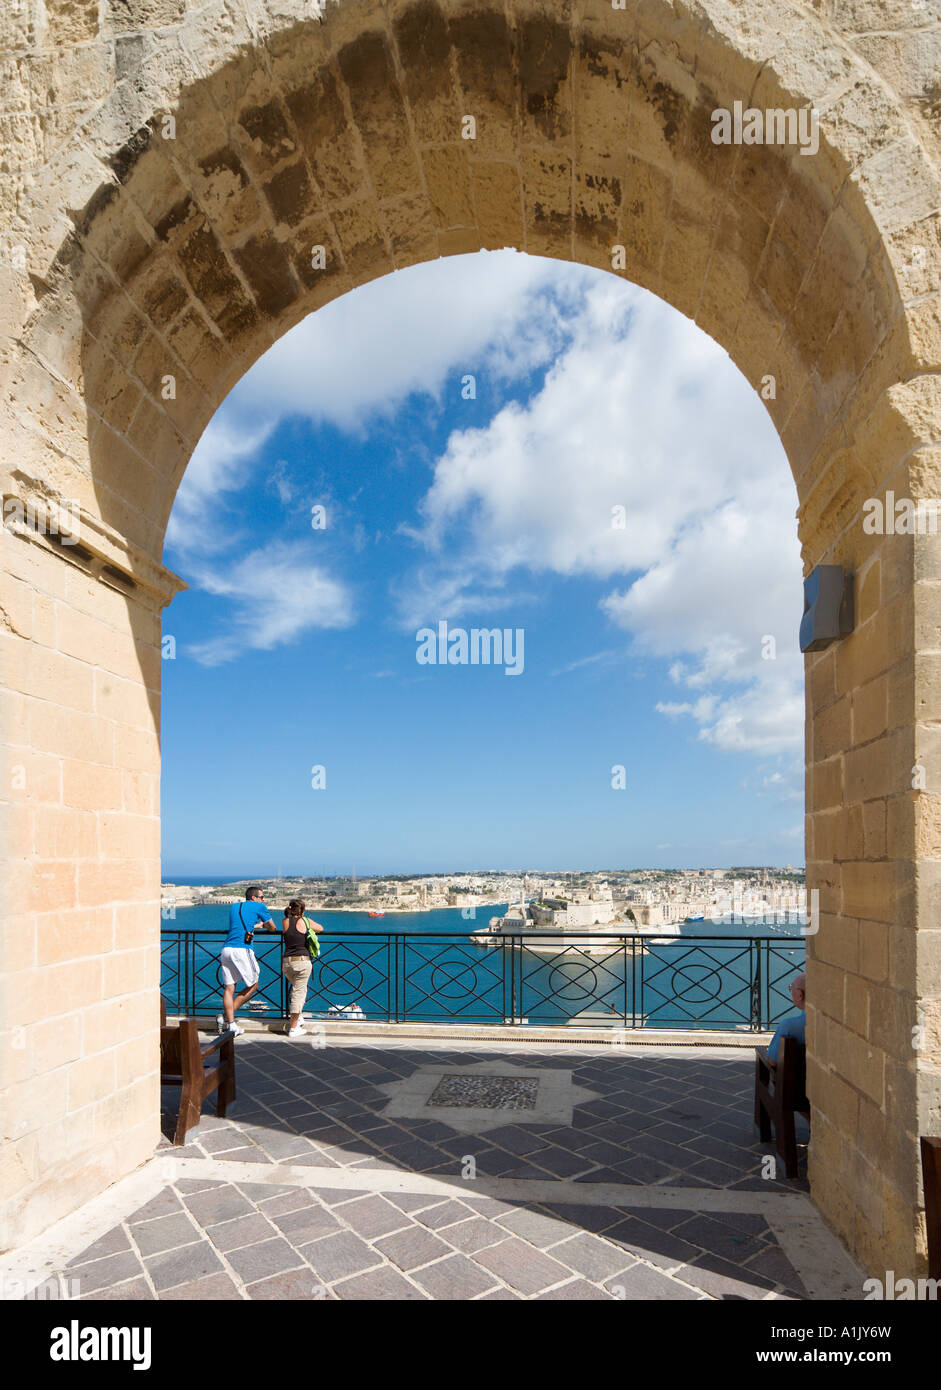 View over Grand Harbour and Fort St Angelo from Upper Barracca Gardens, Valletta, Malta - Stock Image